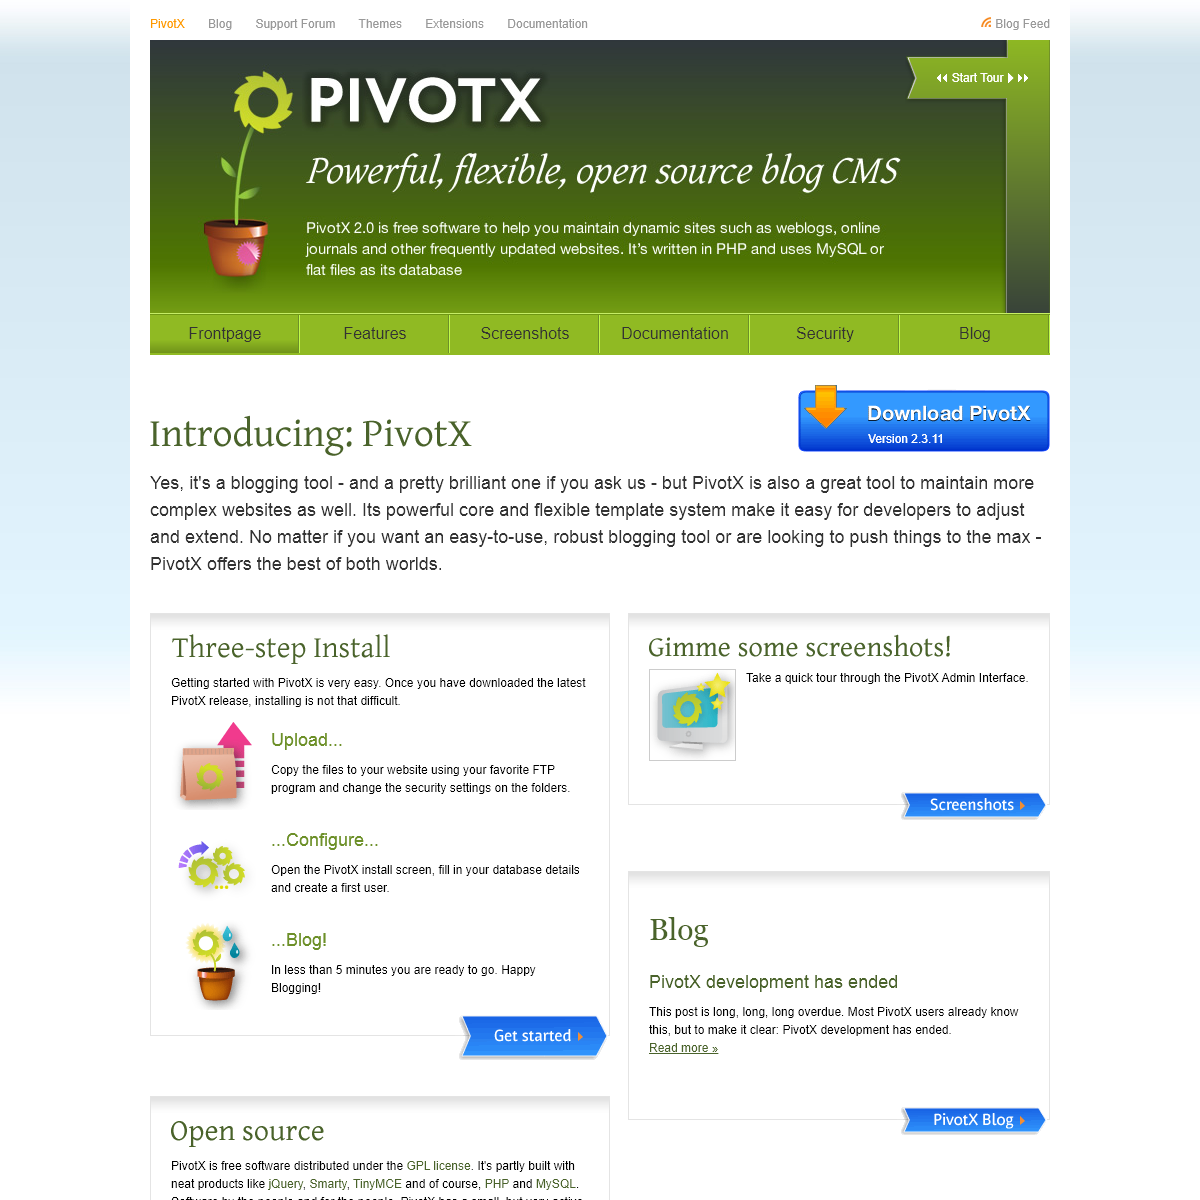 PivotX - The Powerful Open Source Blog CMS